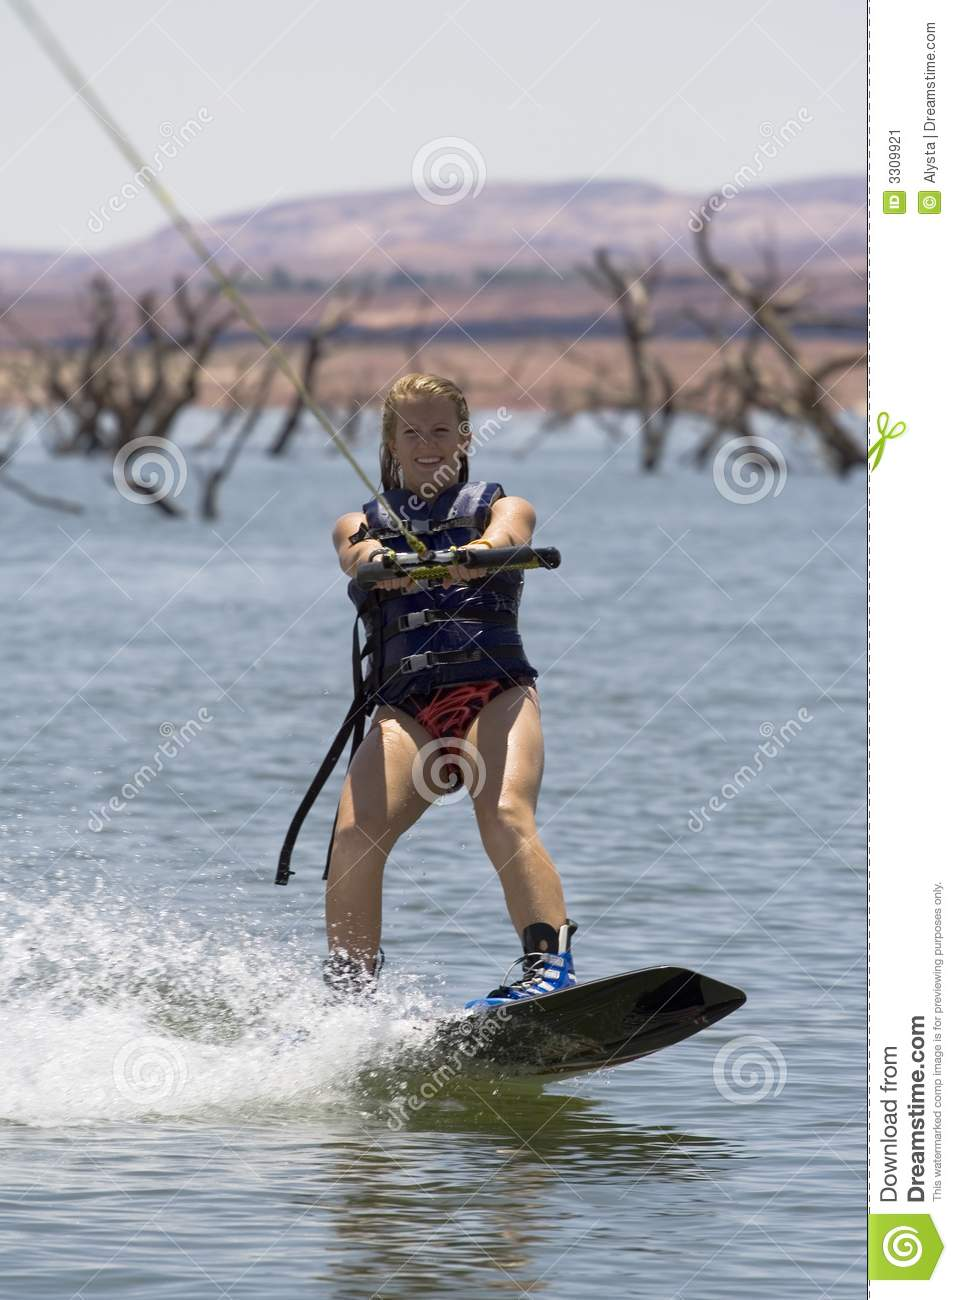 Female wakeboarding pics